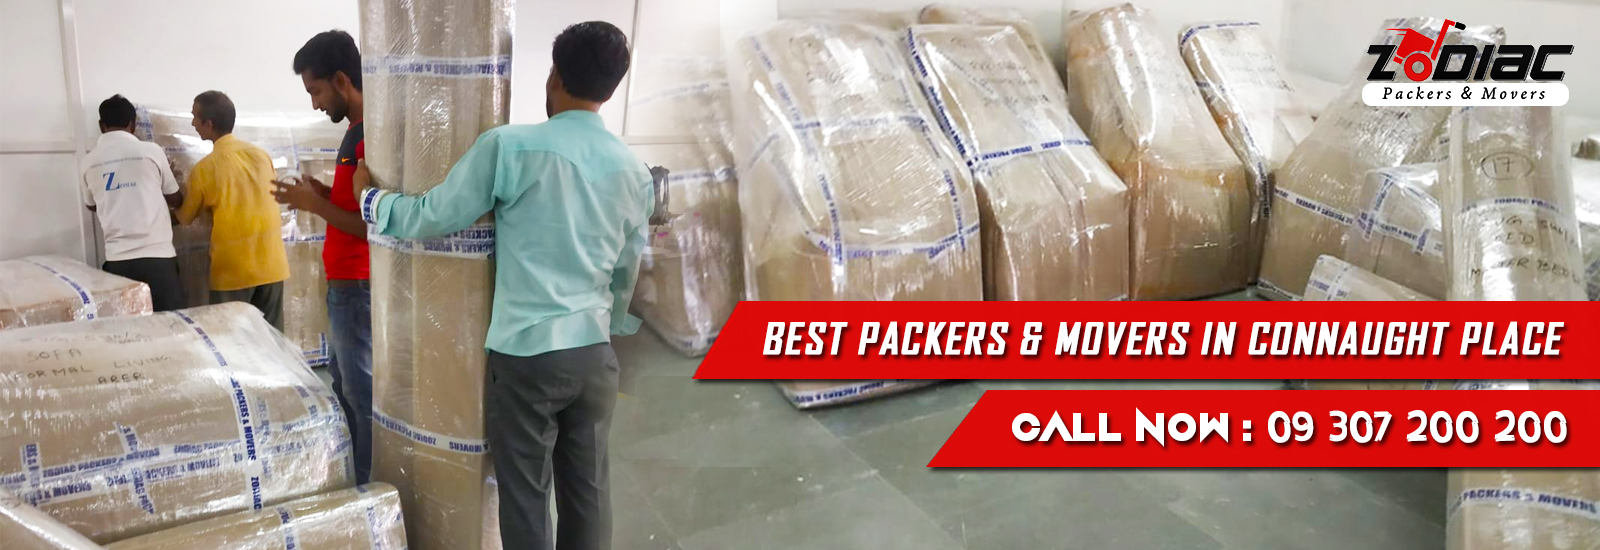 Packers and Movers in Connaught Place